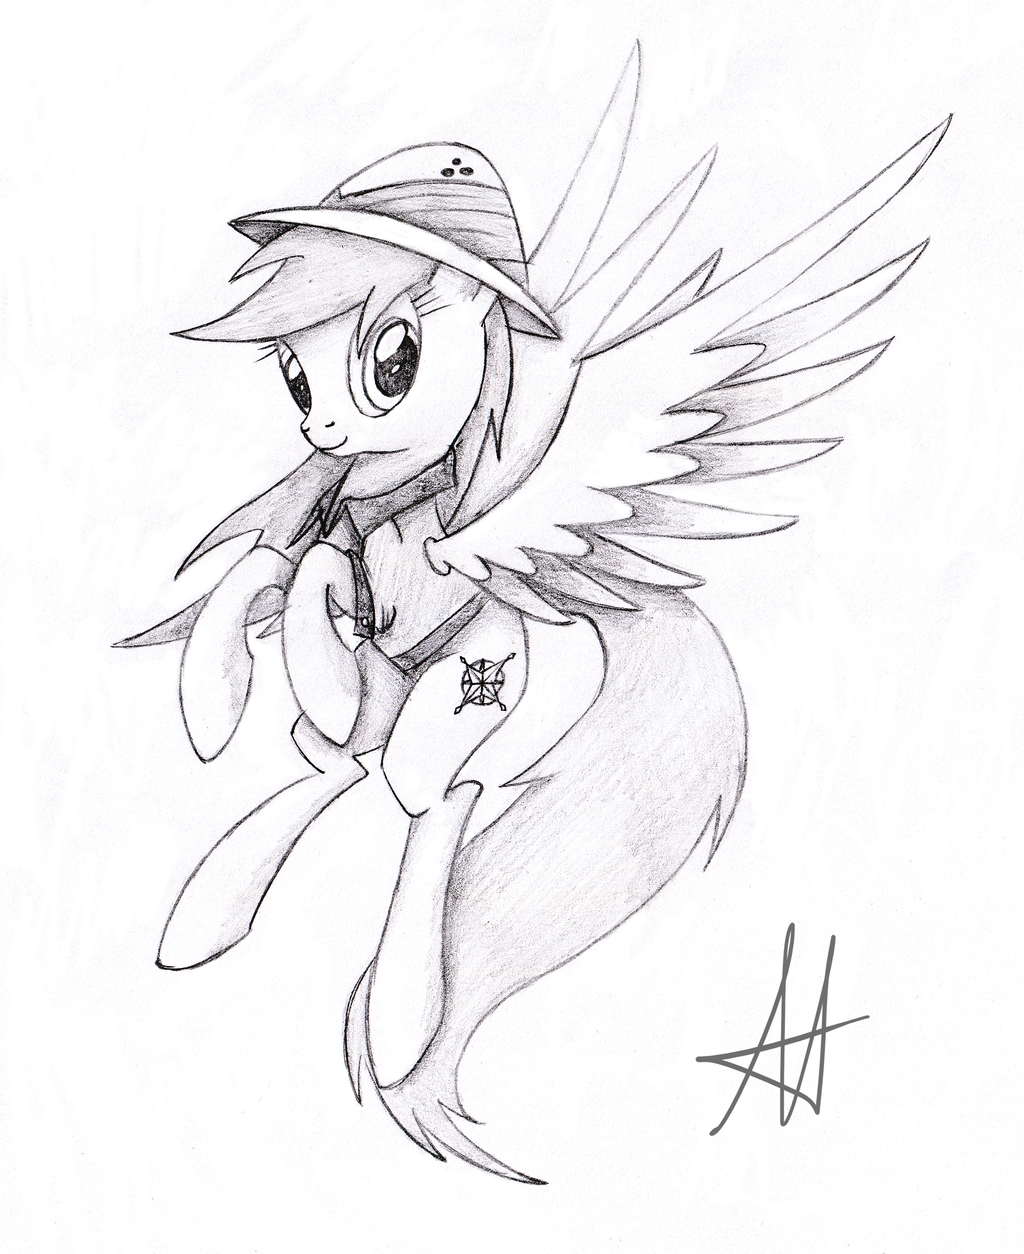 My little pony daring do coloring page on how to view excel worksheet